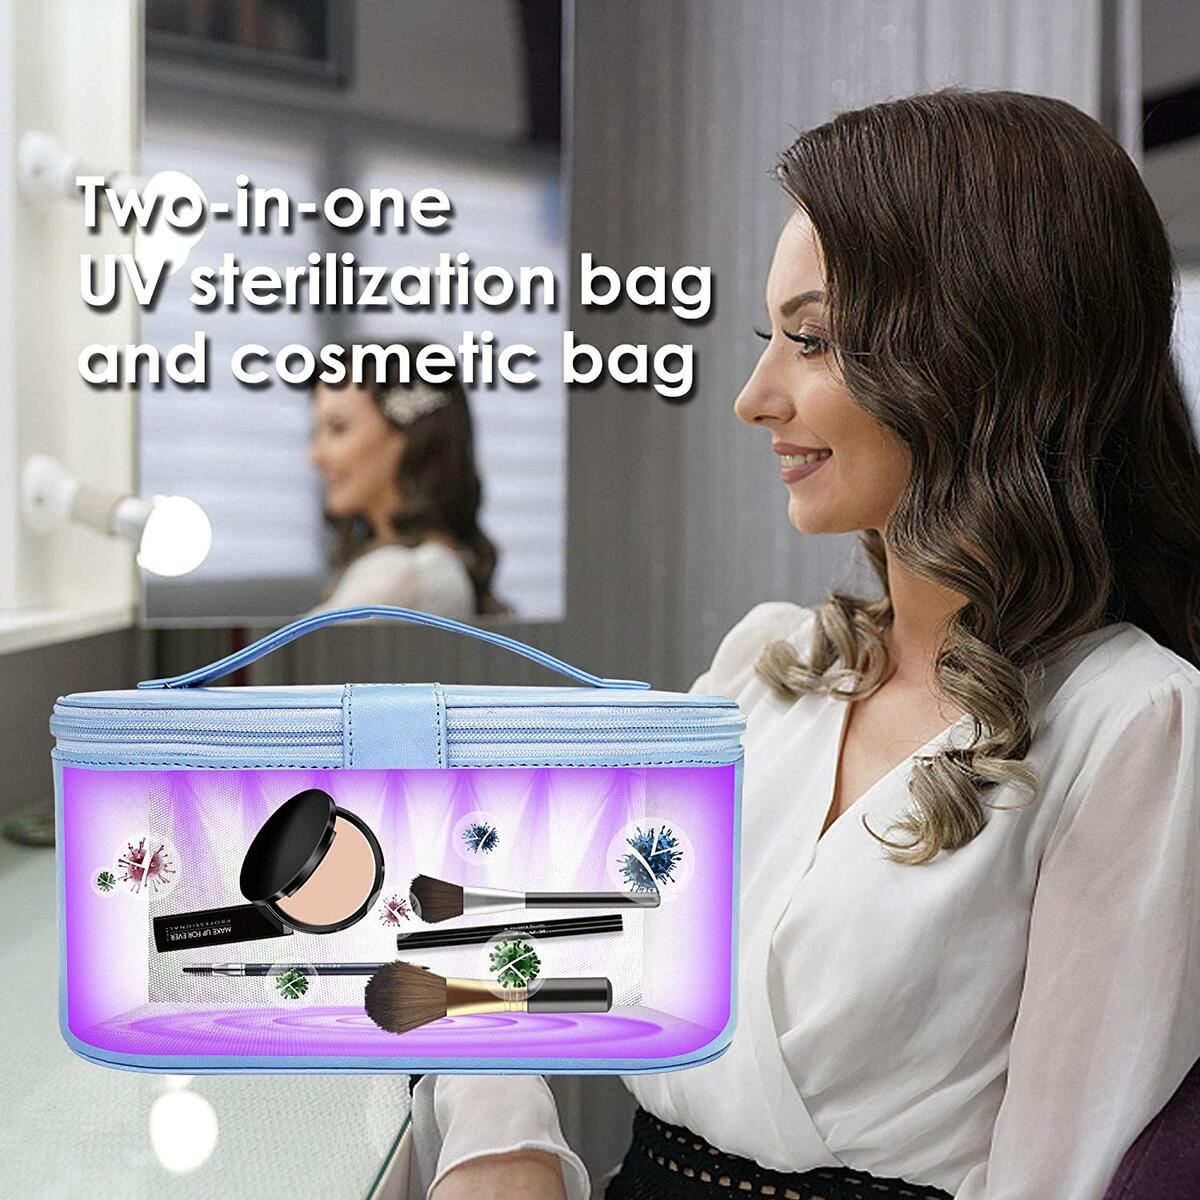 Cahot UV Sterilizer Bag with 8 UV-C LED Lights, Large UV Sanitizer Box for Cell Phone, Wallet, Bottle, Toys, Beauty Tools and Clothes, Portable UV Light Travel Makeup Bag (Sky Blue)